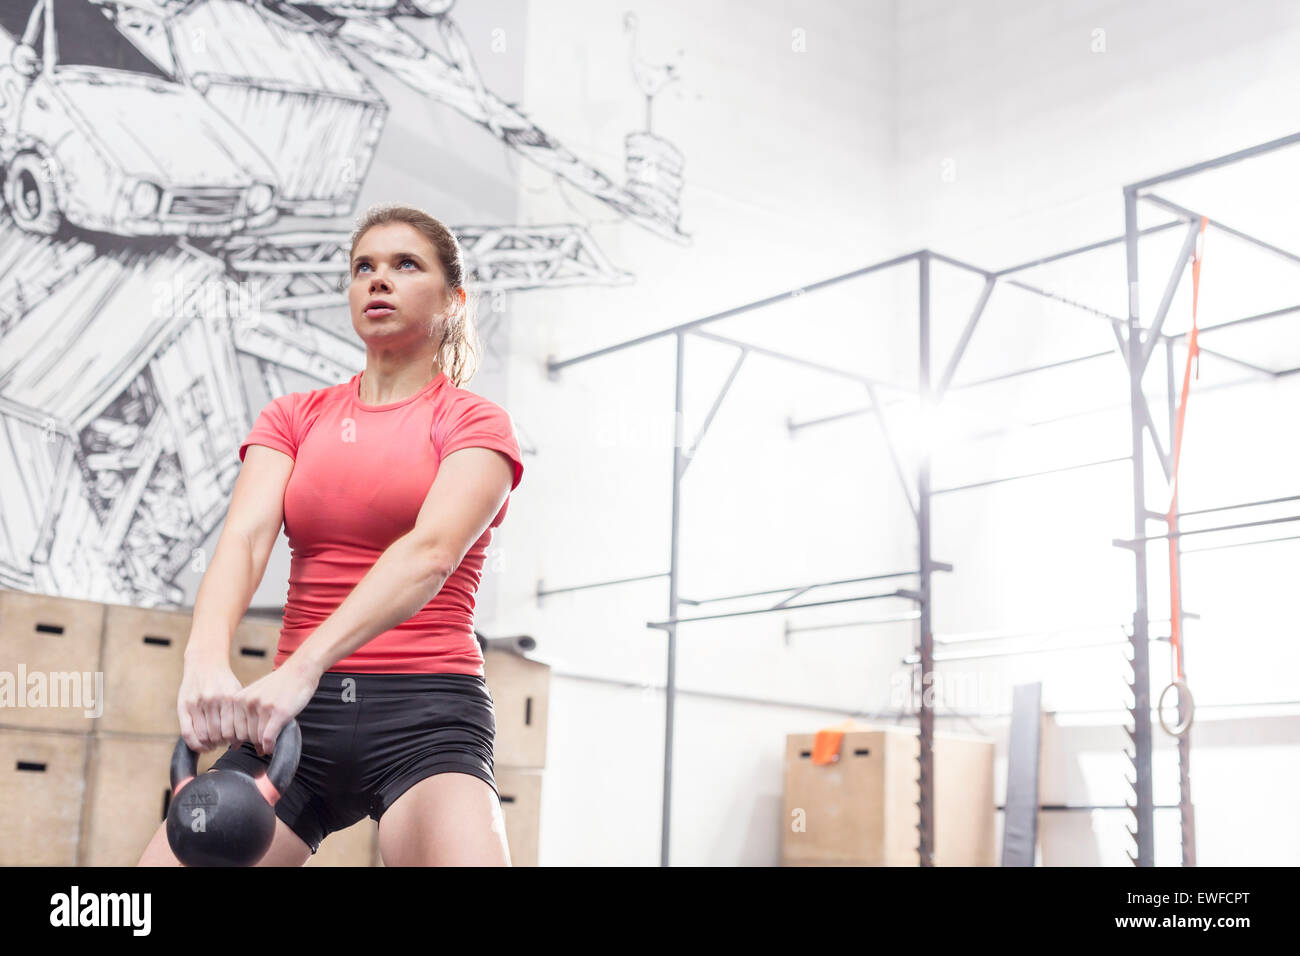 Femme dédié au sport crossfit kettlebell de levage Photo Stock